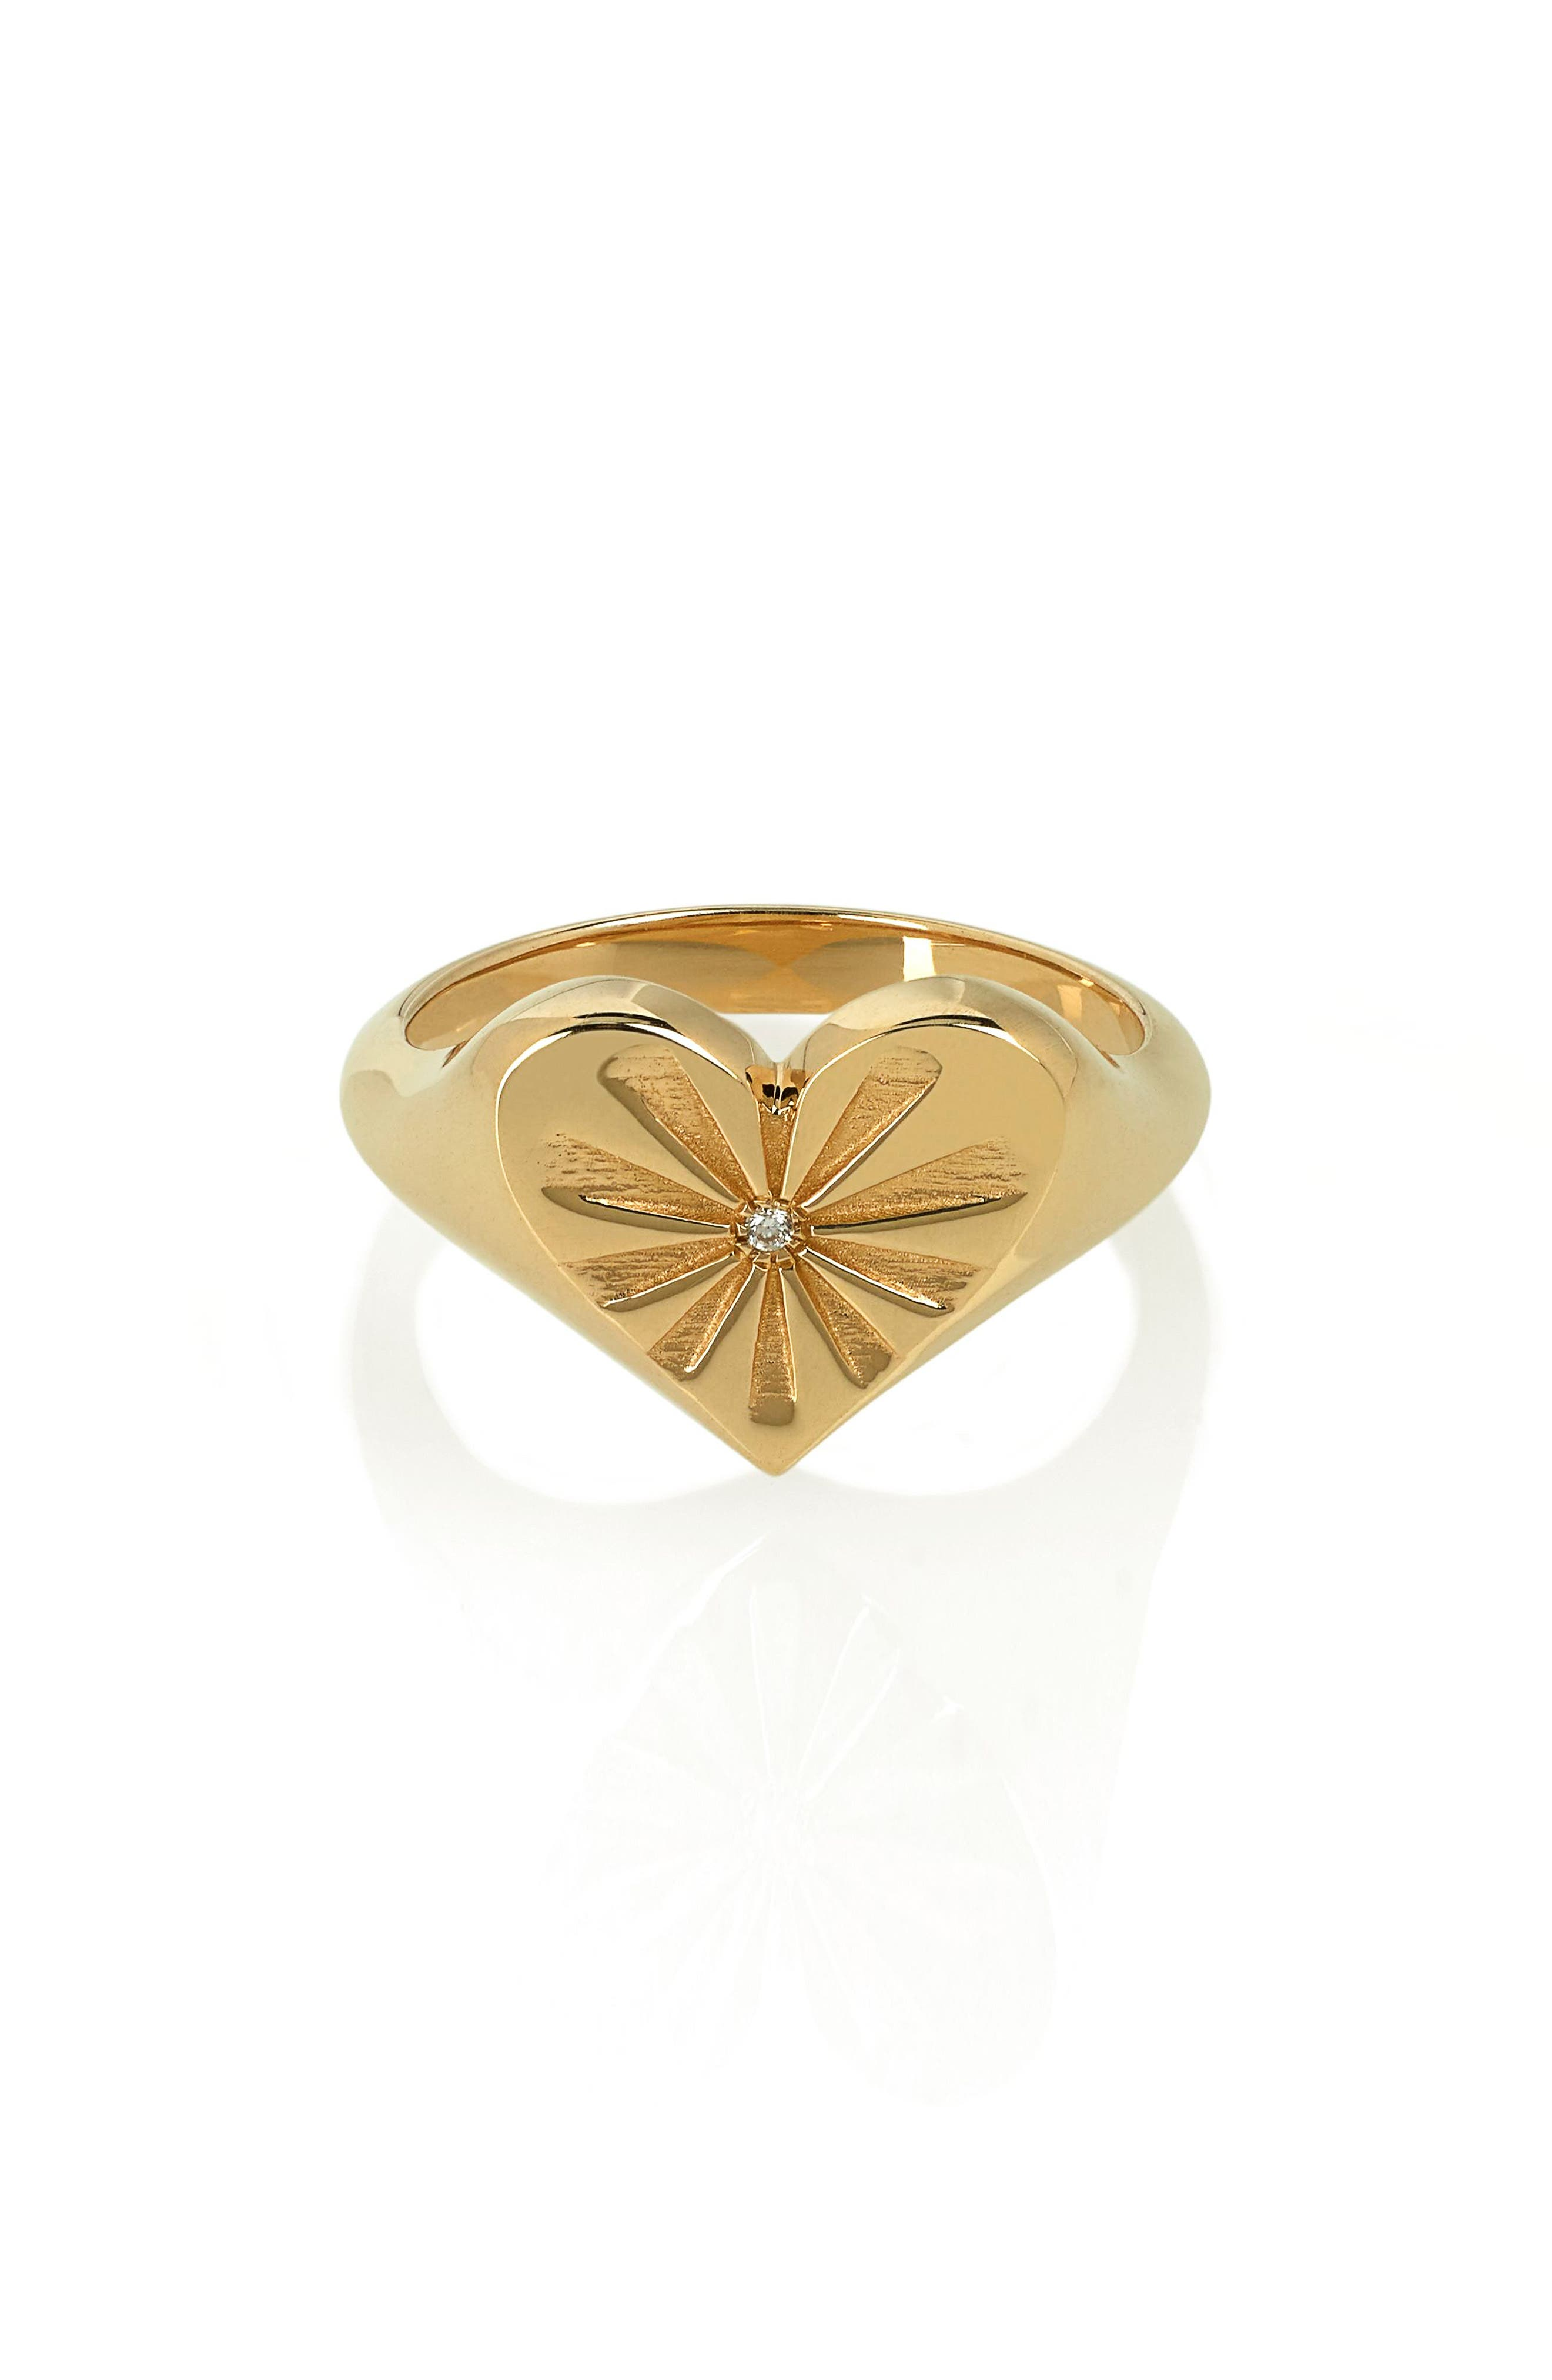 Heart Pinky Ring,                         Main,                         color, YELLOW GOLD